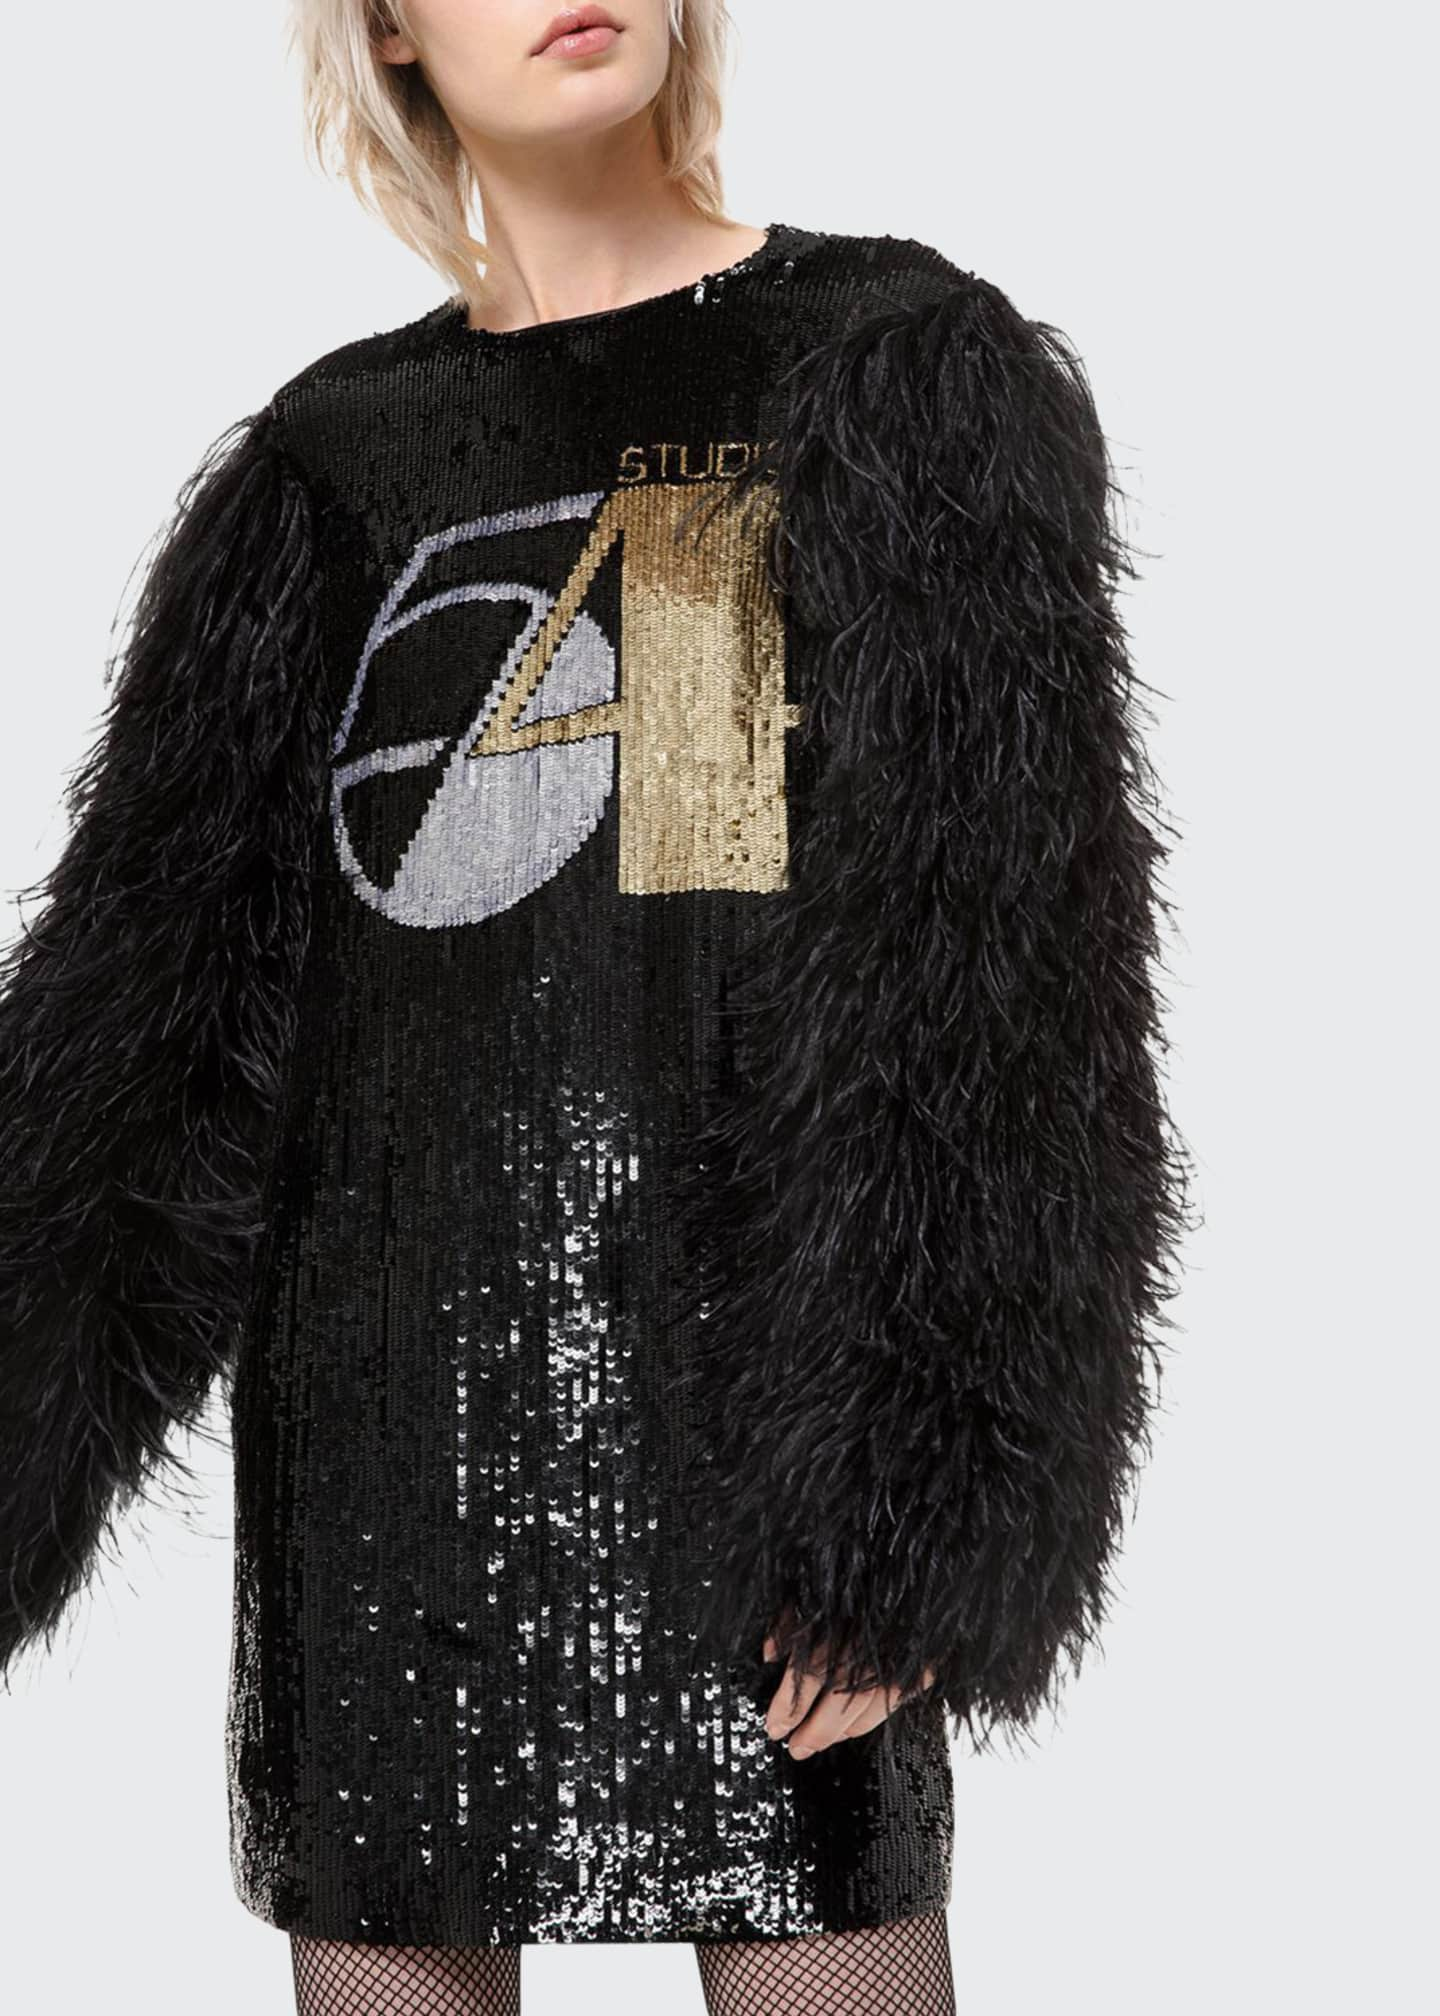 Michael Kors Collection Sequined Shift Dress